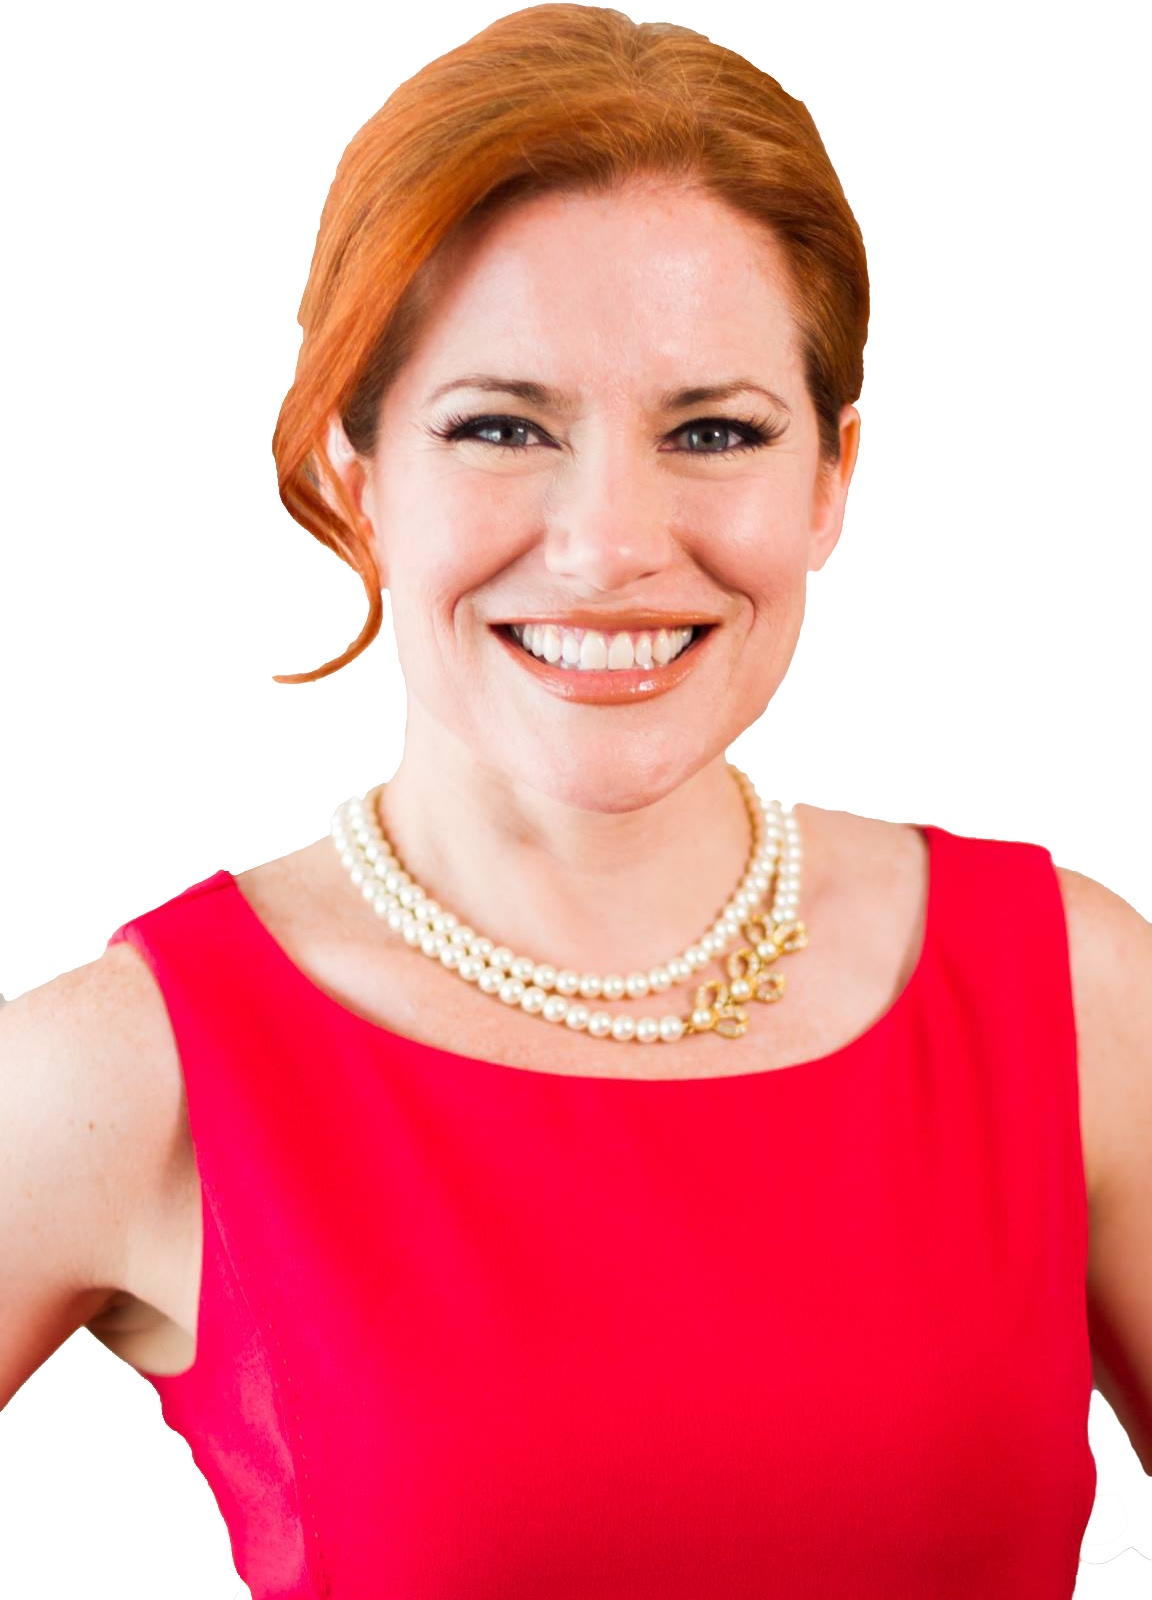 Ingrid Vanderveldt (iV) is the Chairman and CEO of Empowering a Billion Women by 2020 (EBW2020) and MintHER™.